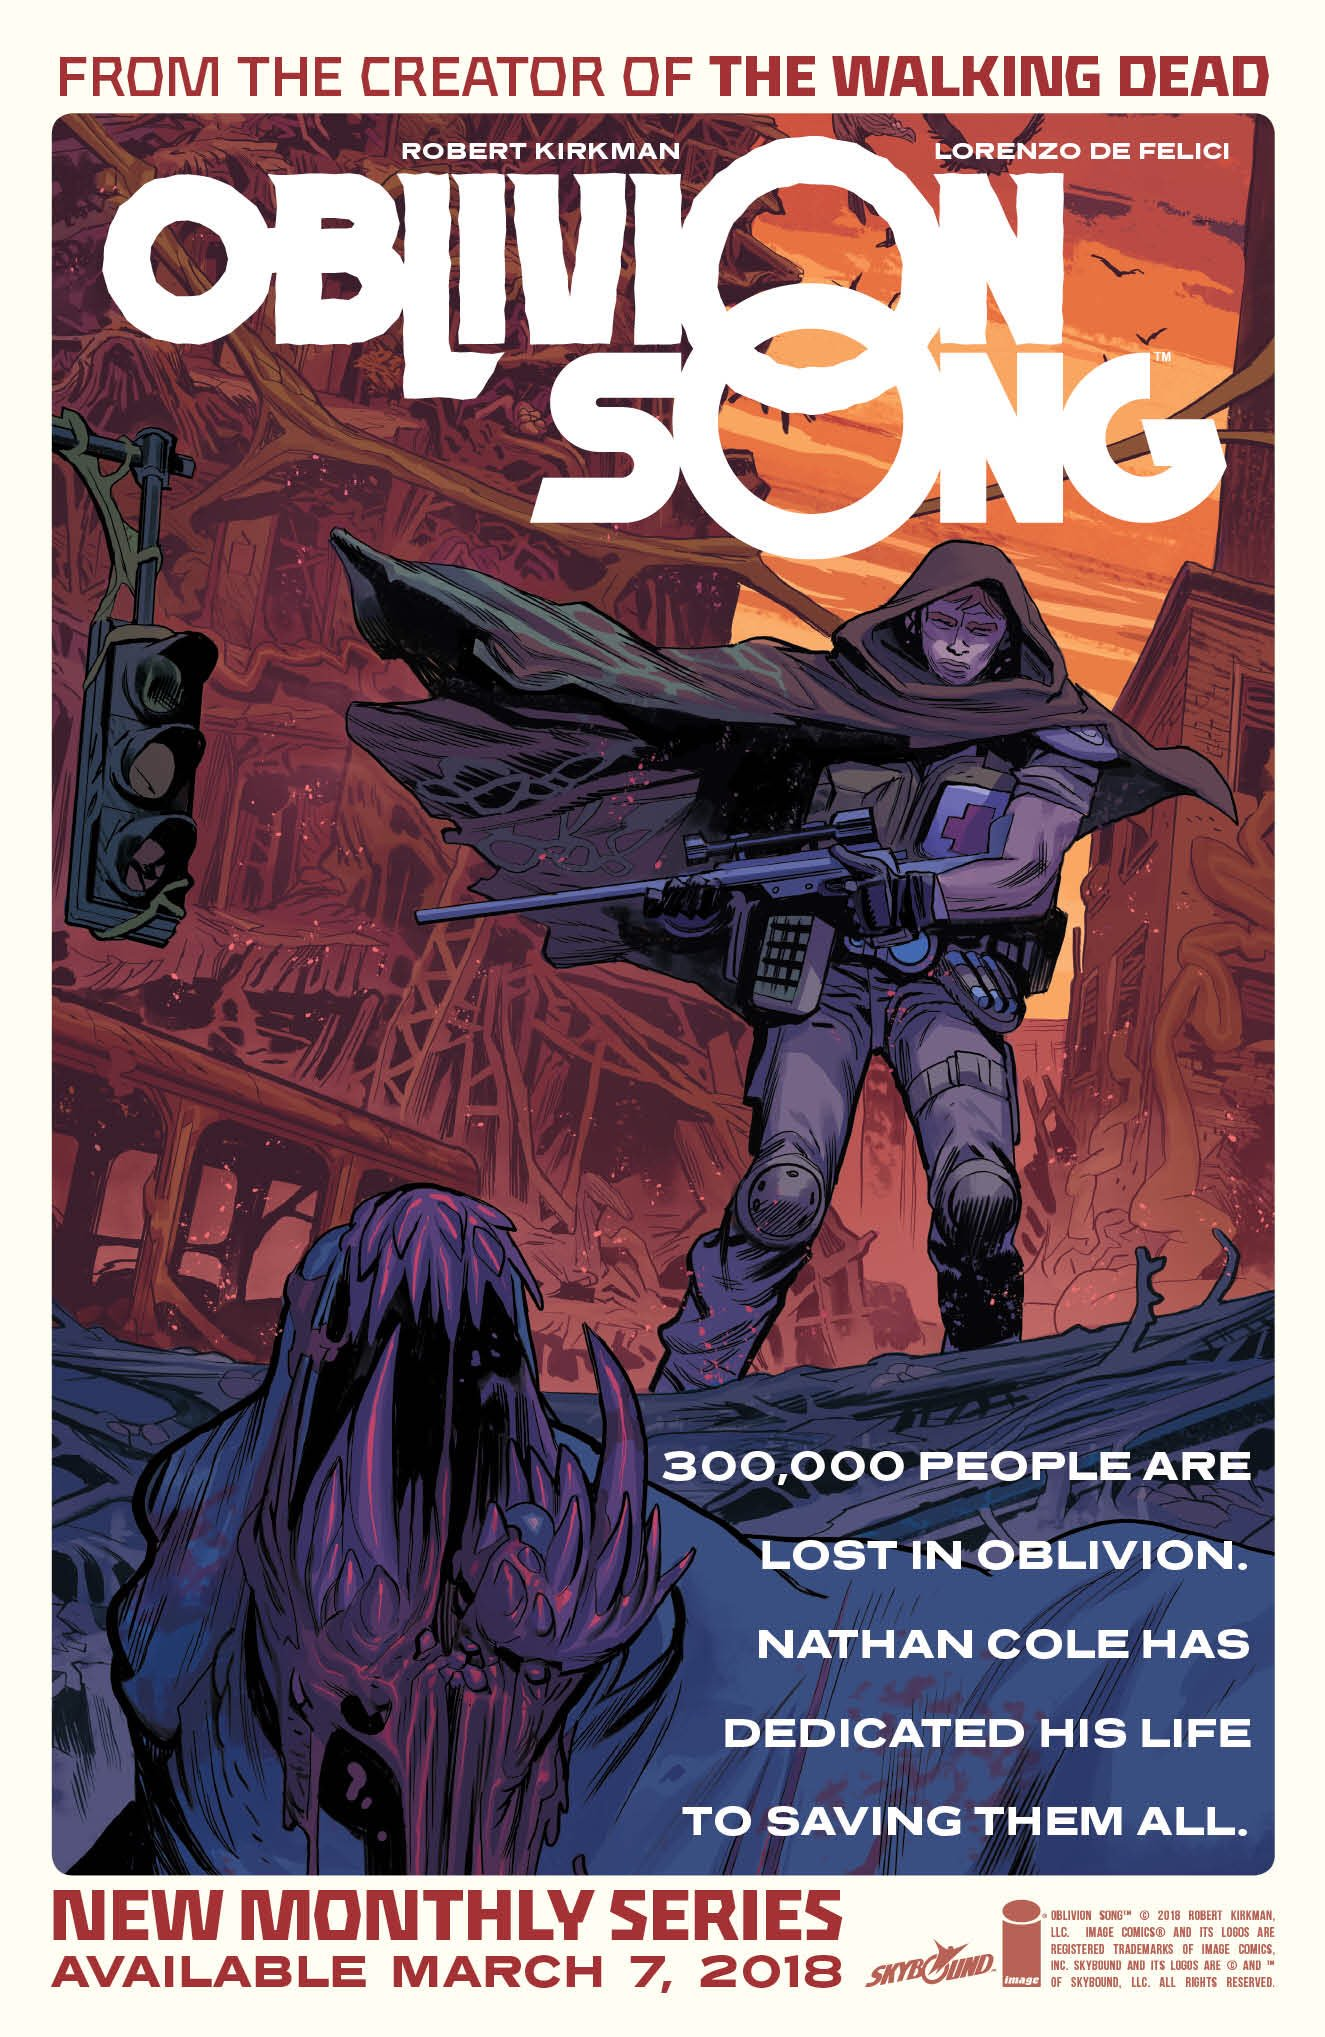 Another glimpse of OBLIVION SONG! Retailers expect a sizeable poster of this to show up in your stores very soon. https://t.co/k7skYkT4Br